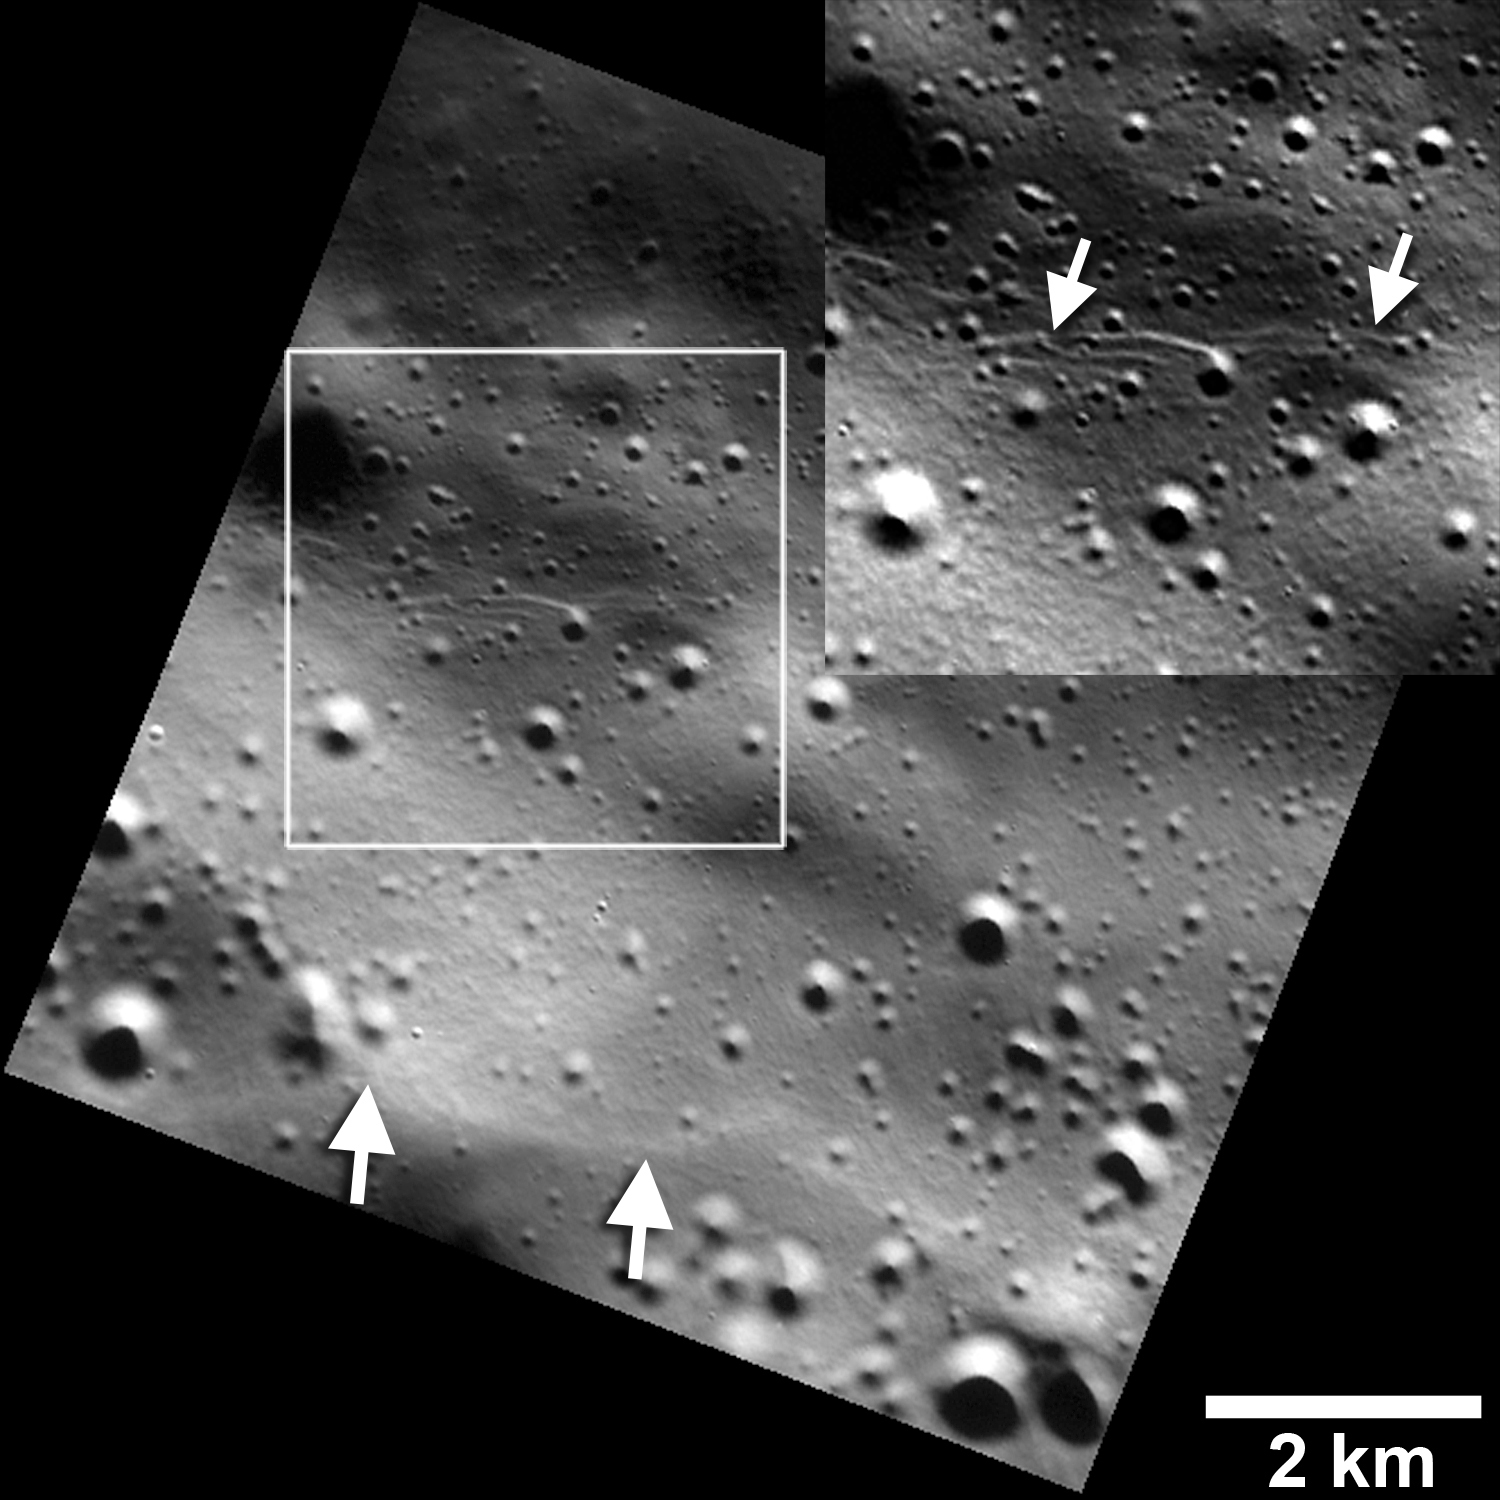 Images showing small fault scarps and trough (lower and upper white arrows) found on Mercury;s surface. - Image Credits: NASA/JHUAPL/Carnegie Institution of Washington/Smithsonian Institution.